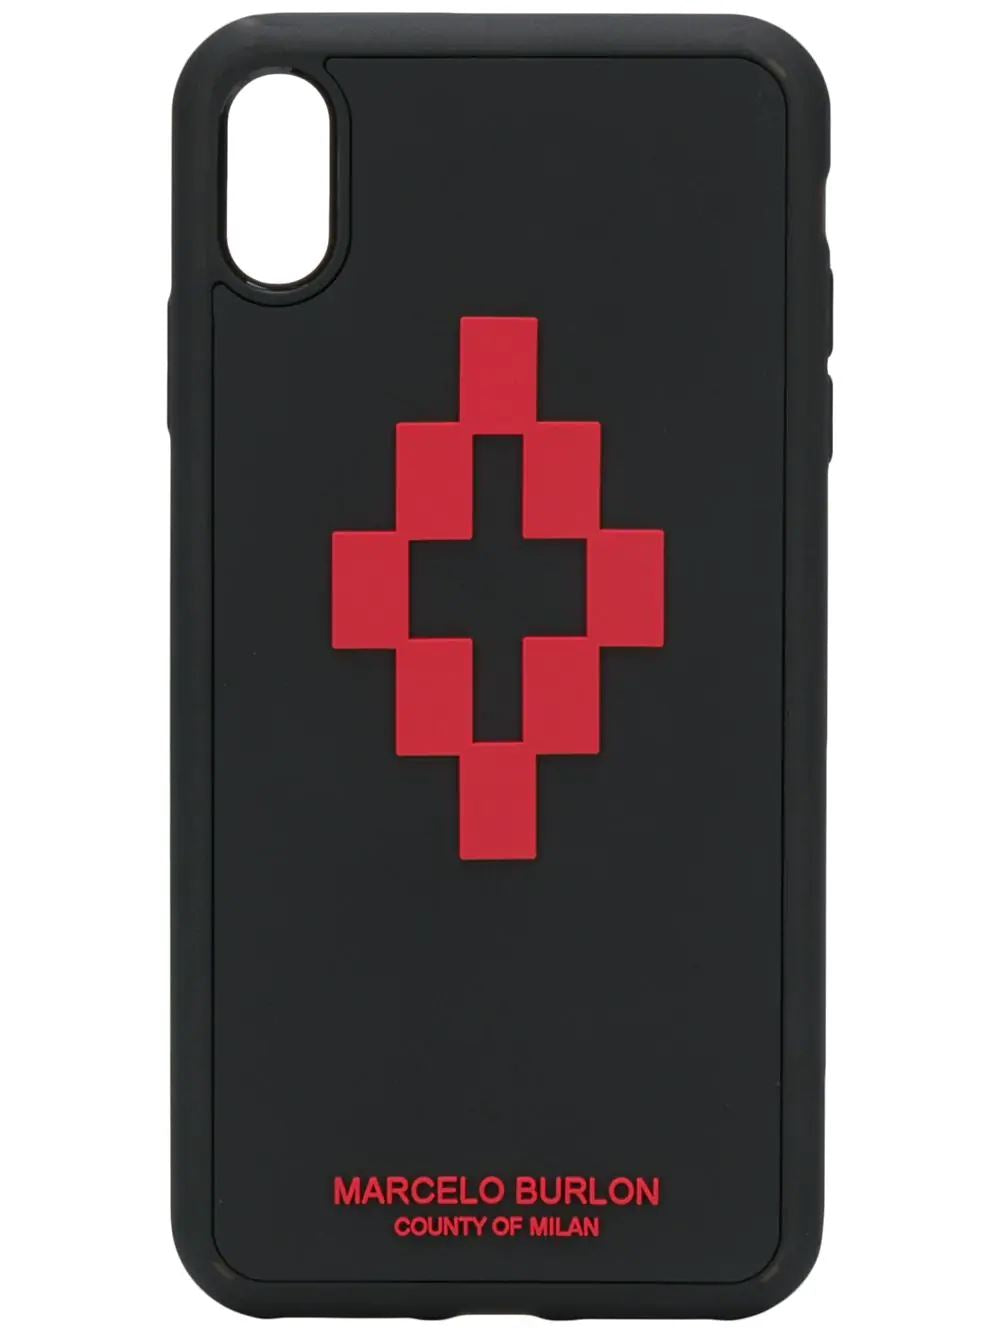 MARCELO BURLON 3D cross logo iPhone XS Max case - Maison De Fashion